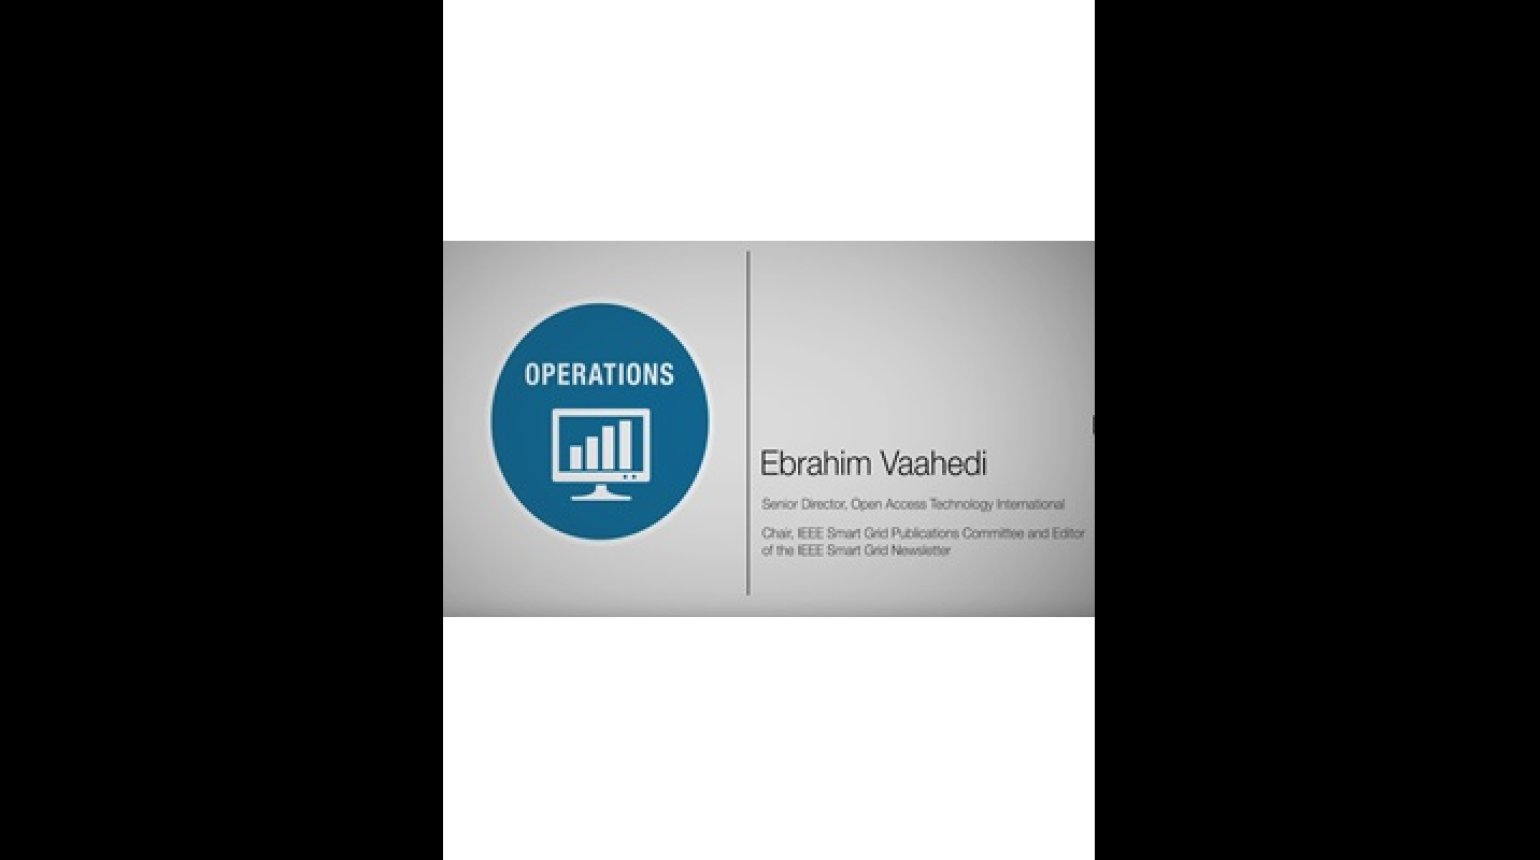 Operations Domain - Ebrahim Vaahedi